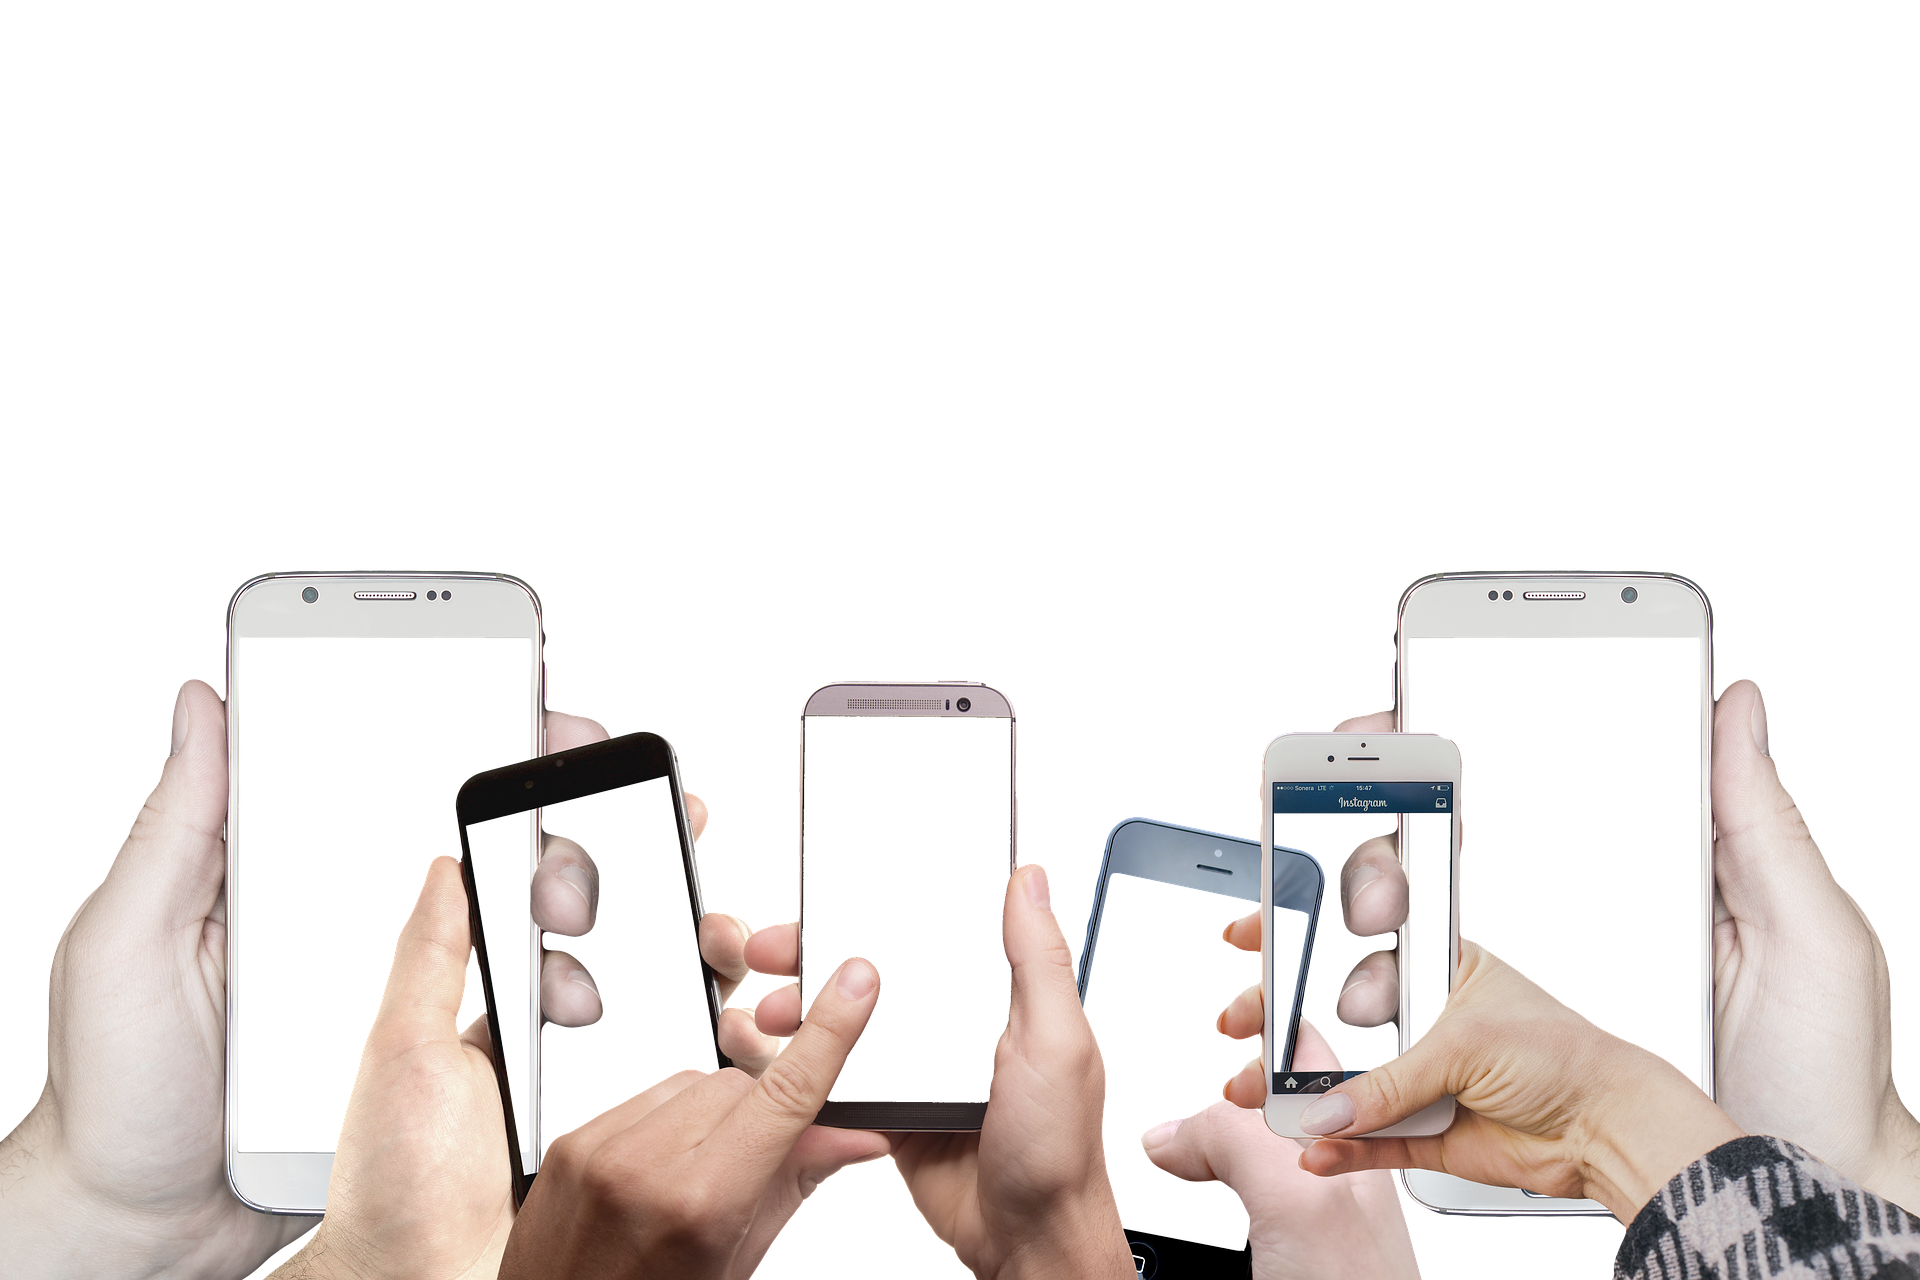 Many smartphones of all kinds and companies